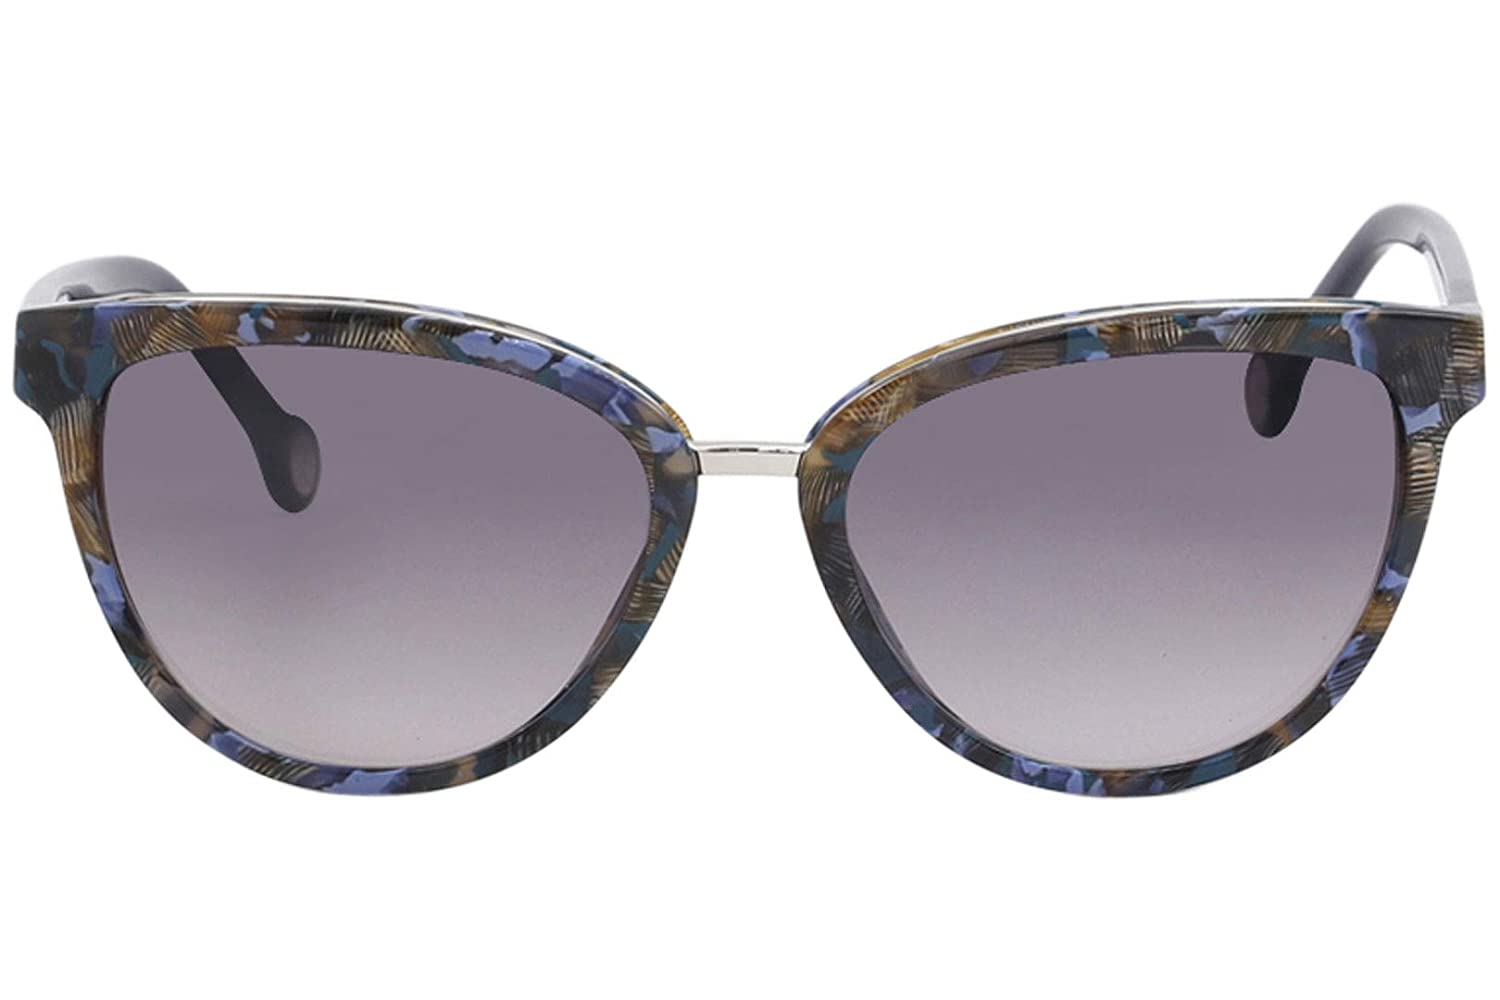 Amazon.com: Carolina Herrera Designer Sunglasses SHE688-0719 ...